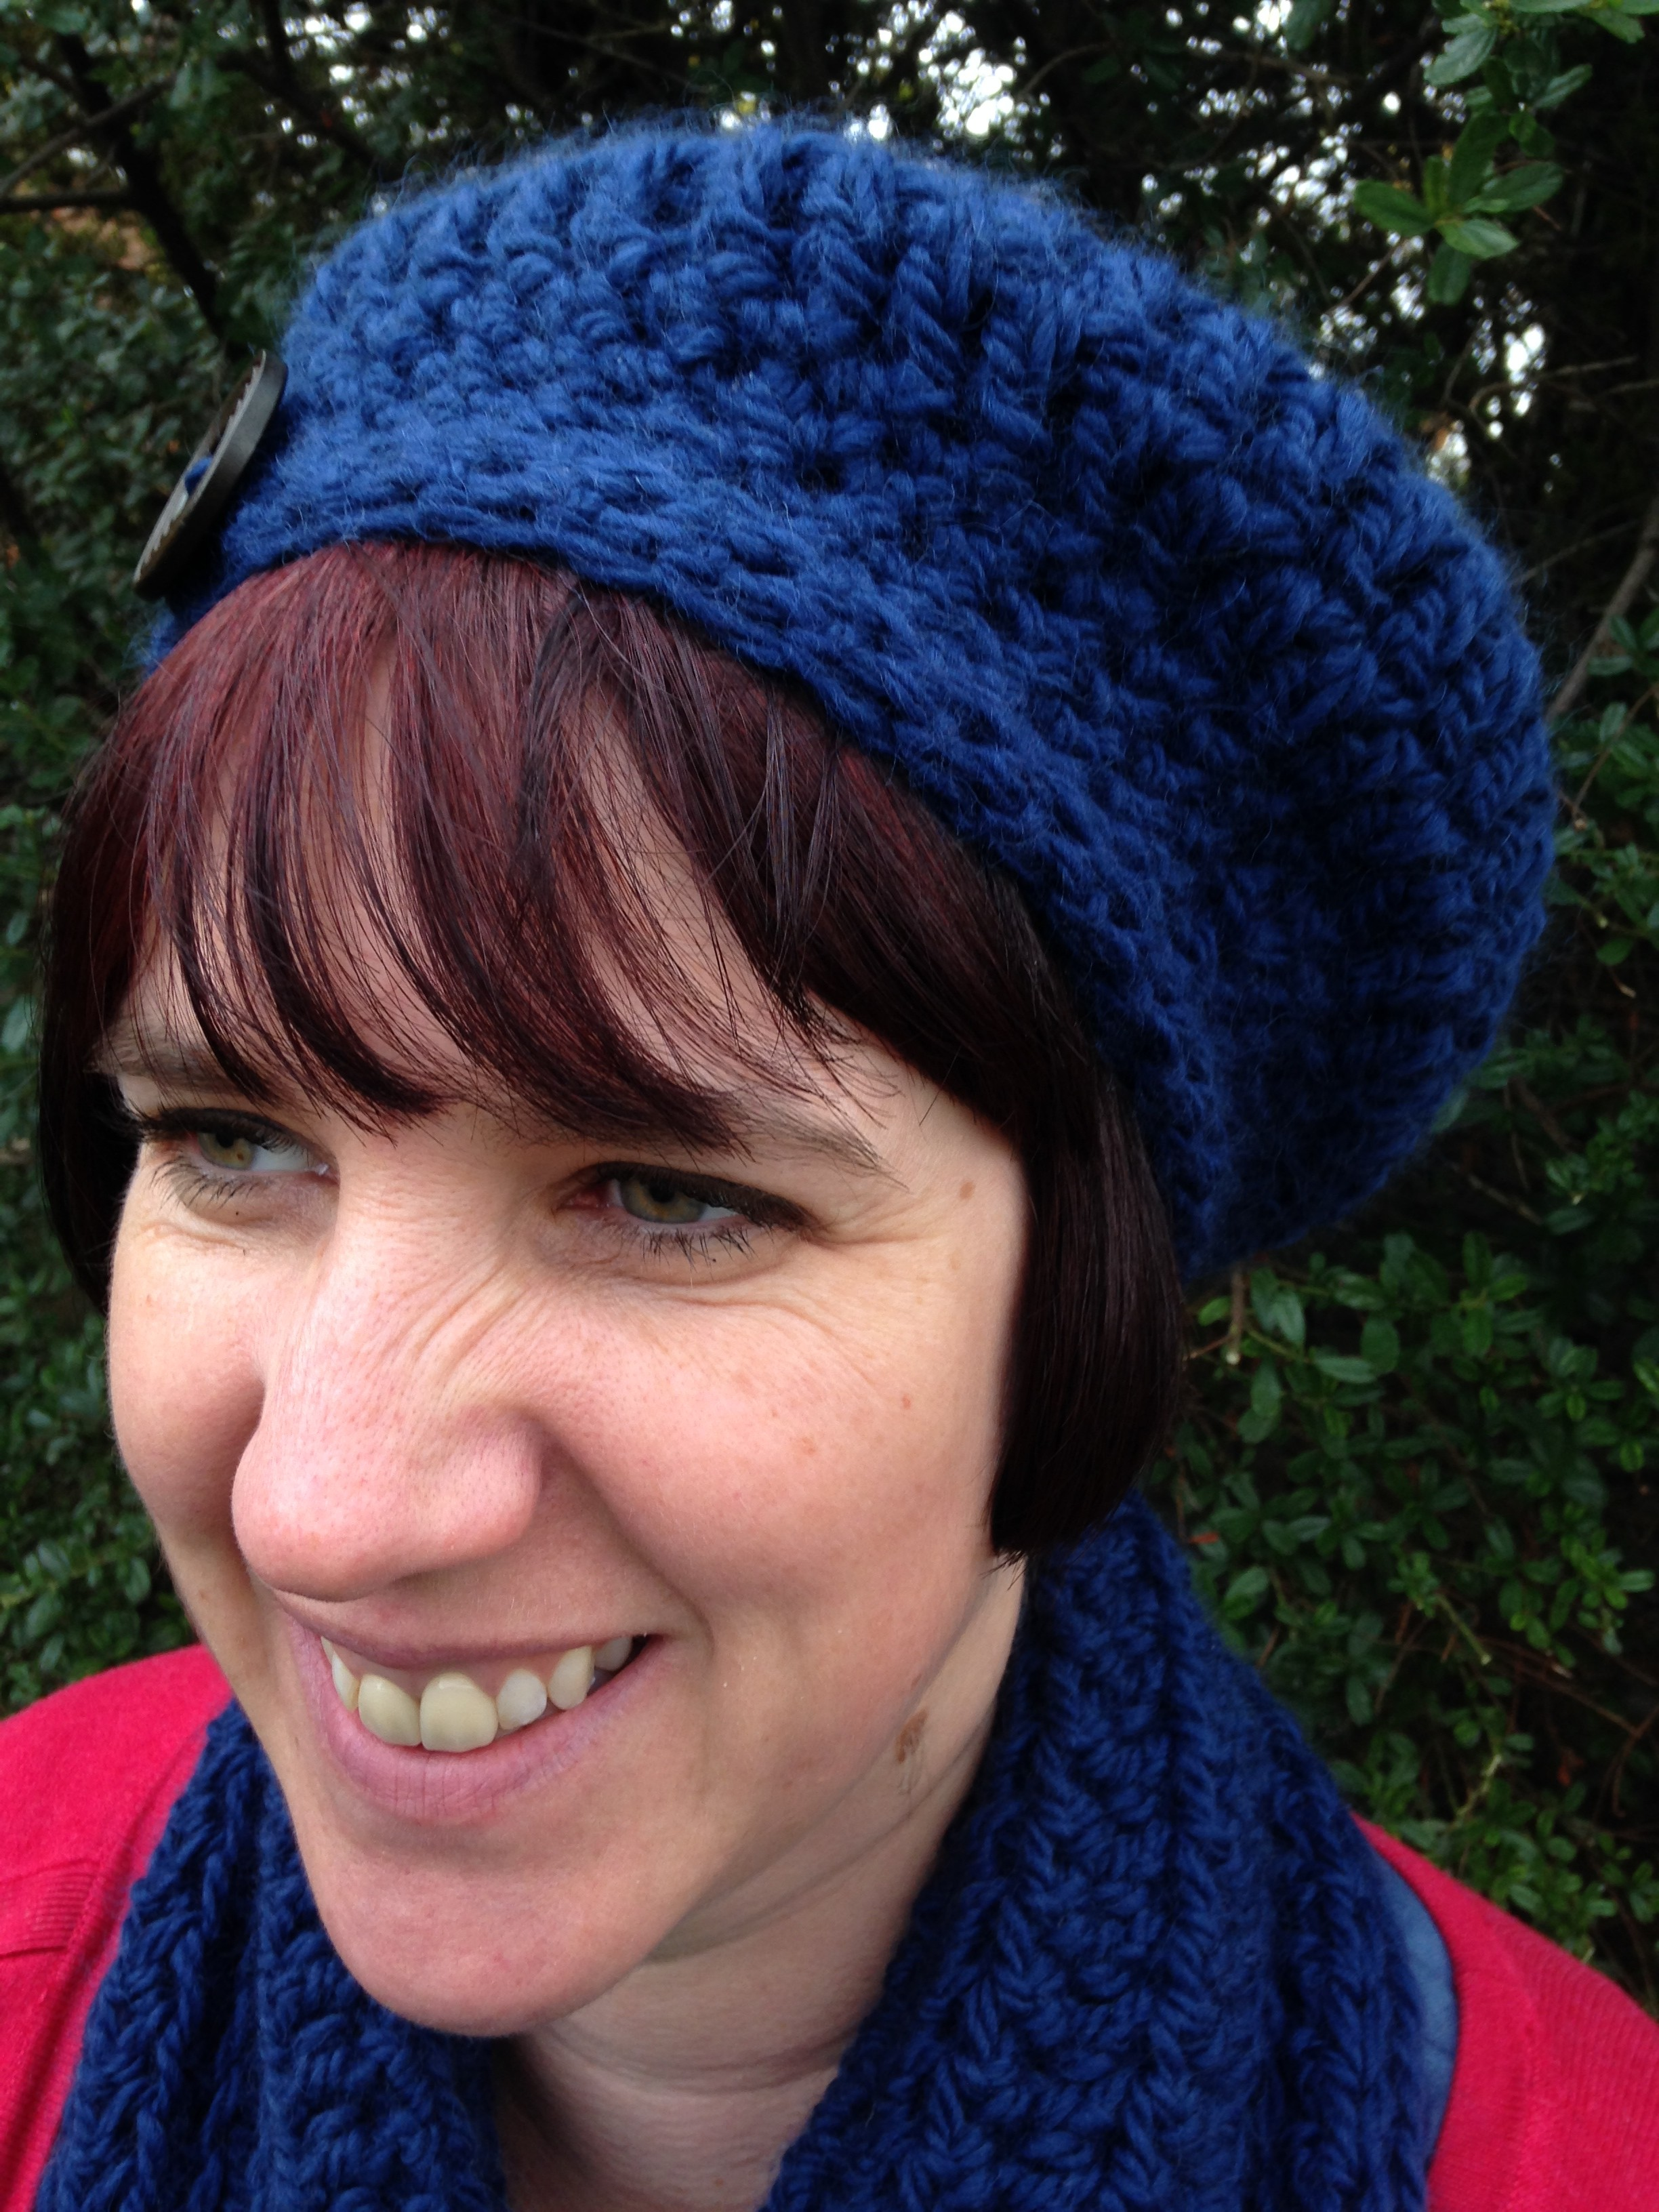 One Ball Beret Crochet Hat Pattern Re Made By Sam